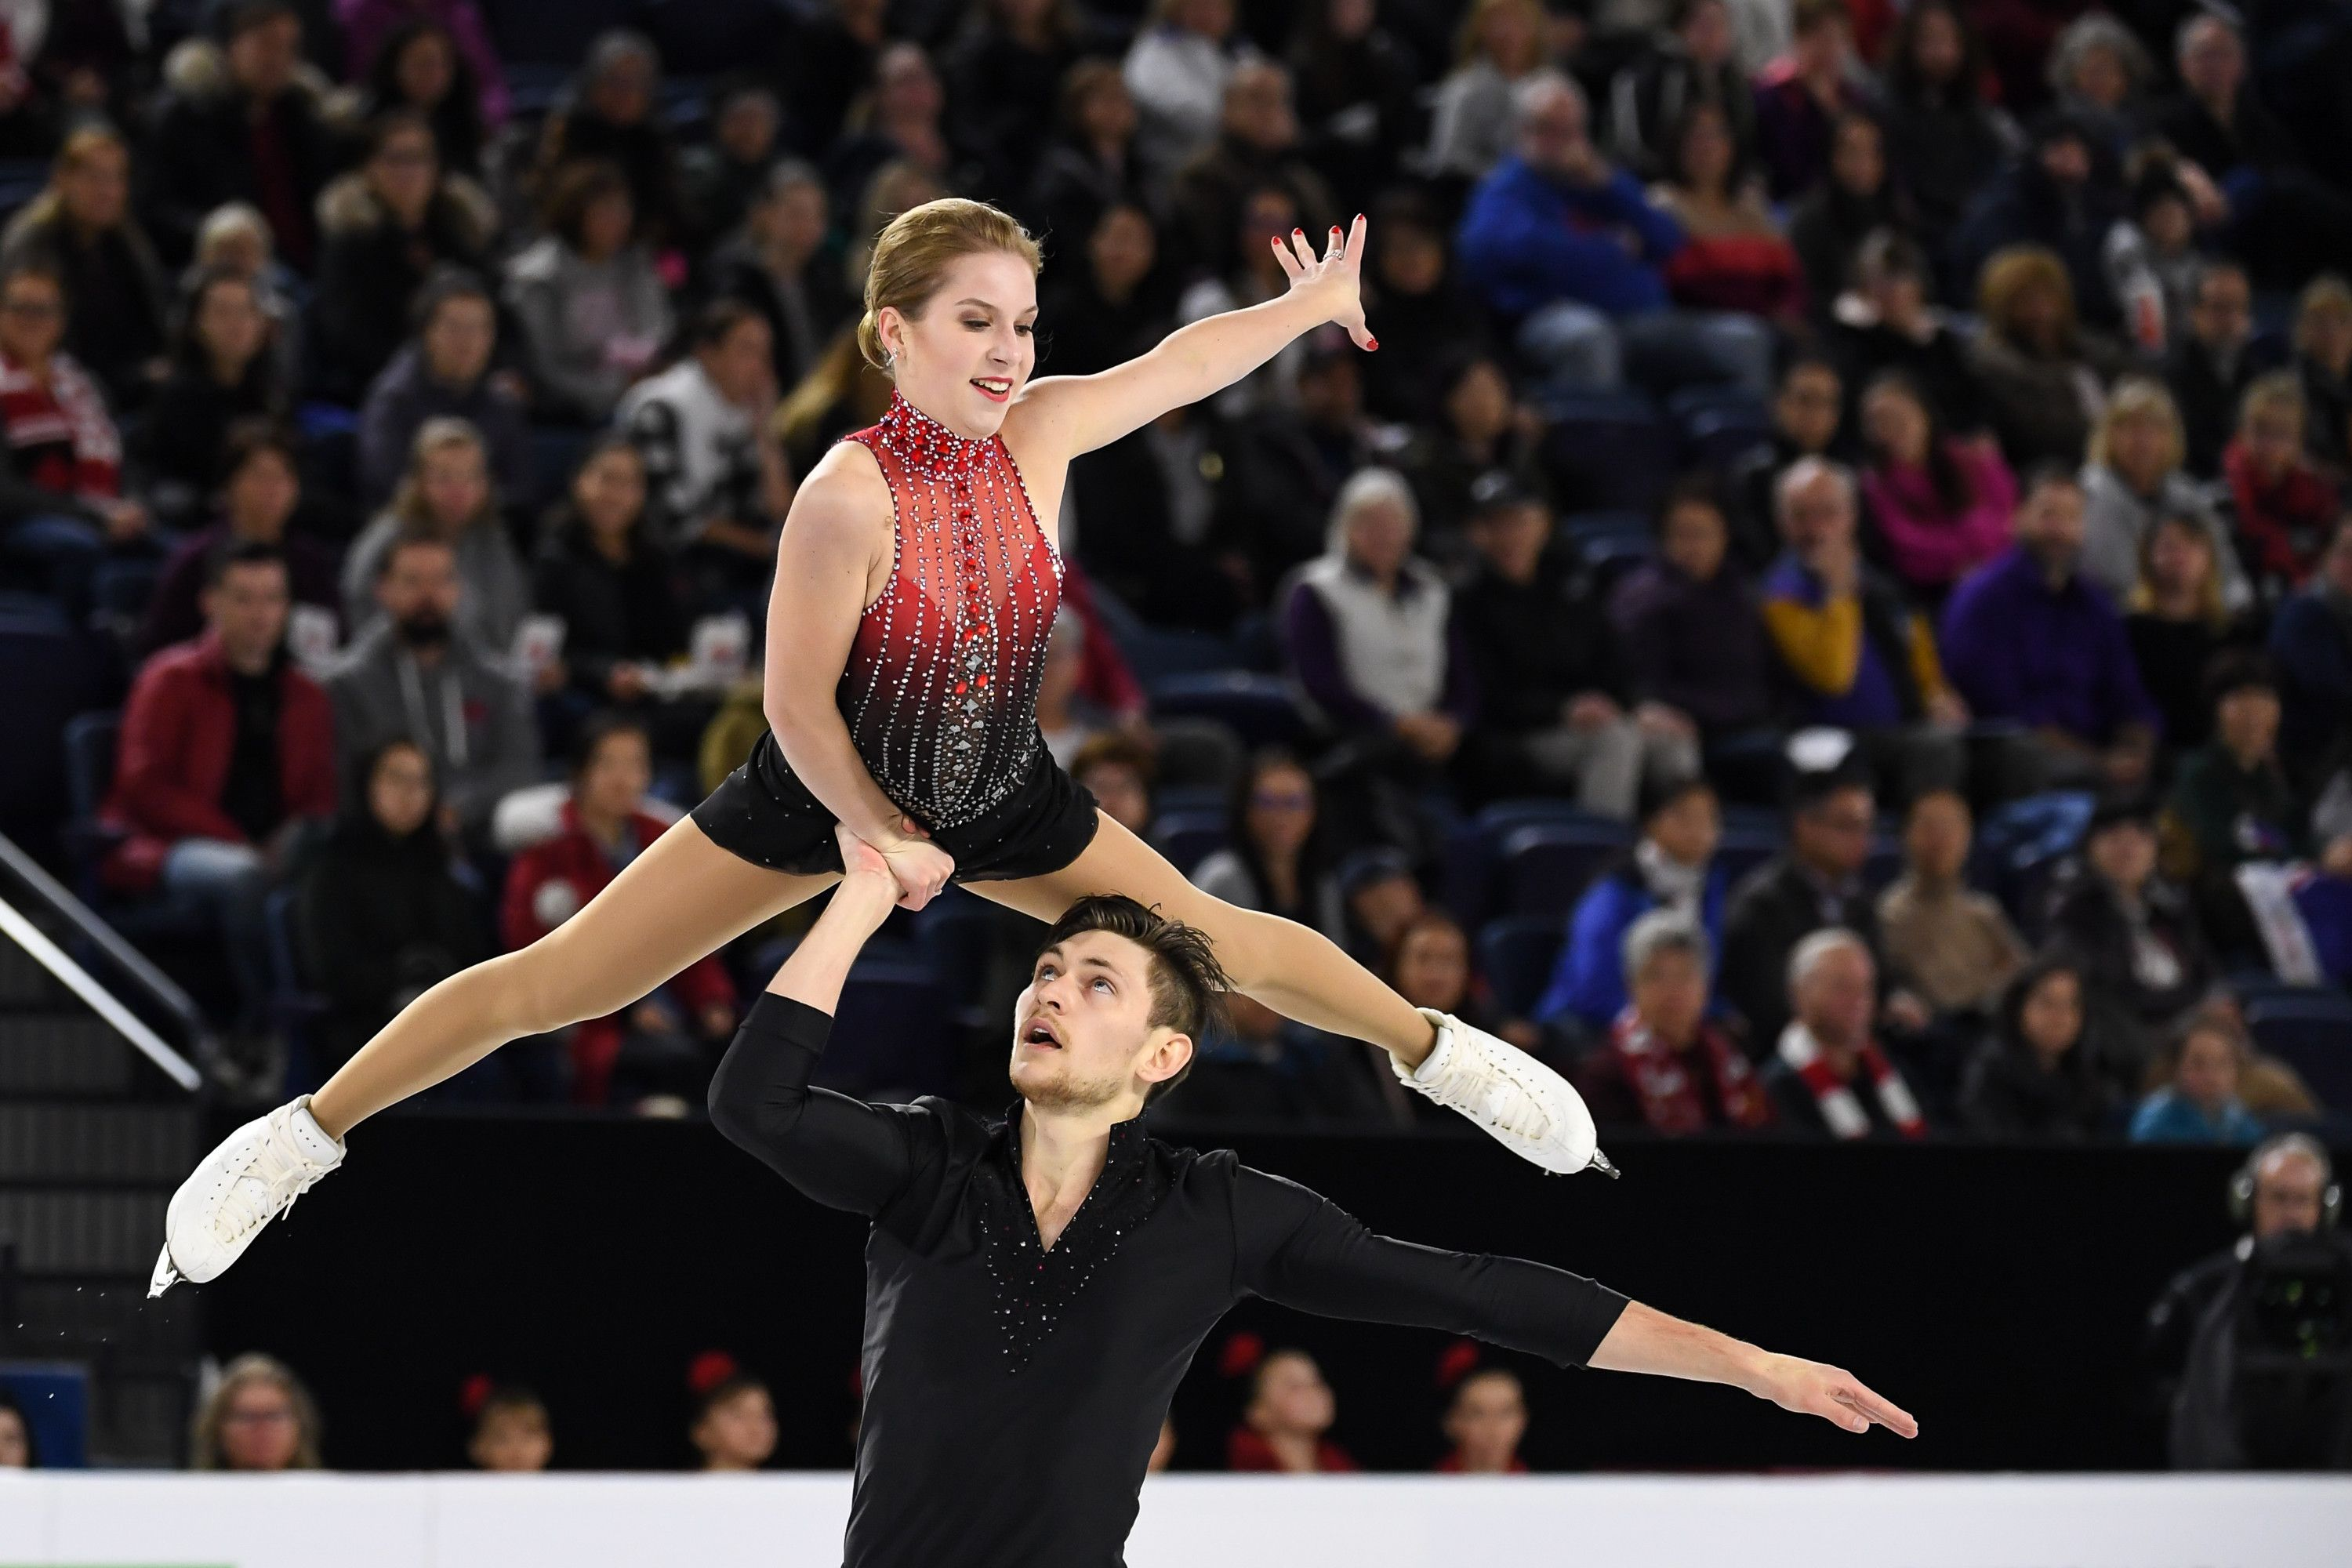 Ekaterina Alexandrovskaya und Harley Windsor, 2018 | Quelle: Minas Panagiotakis/International Skating Union/Getty Images